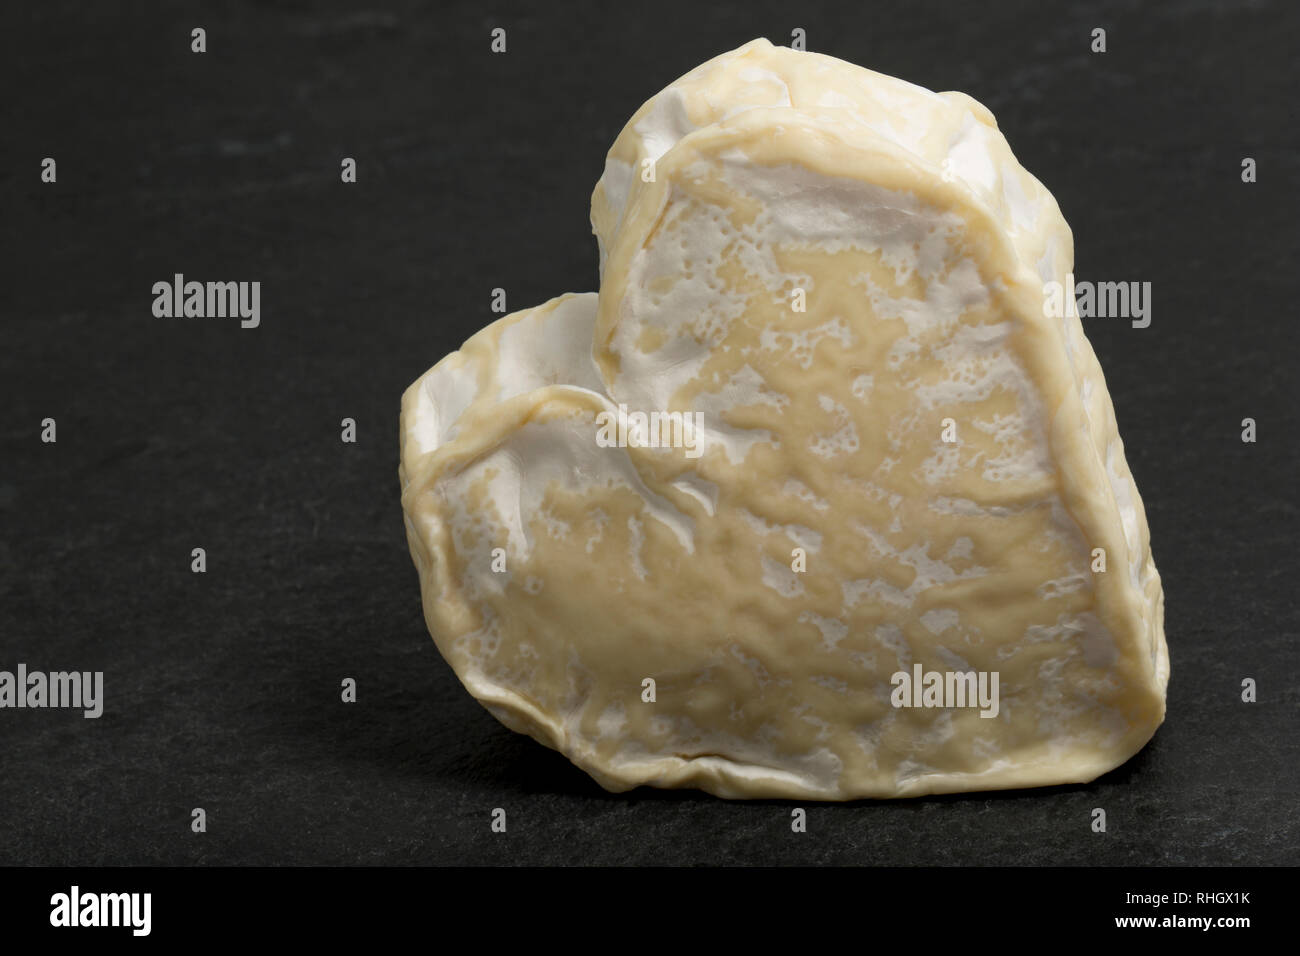 A heart-shaped Neufchatel cheese, from Normandy, France made from cows milk, photographed on a dark, slate background. England UK GB - Stock Image